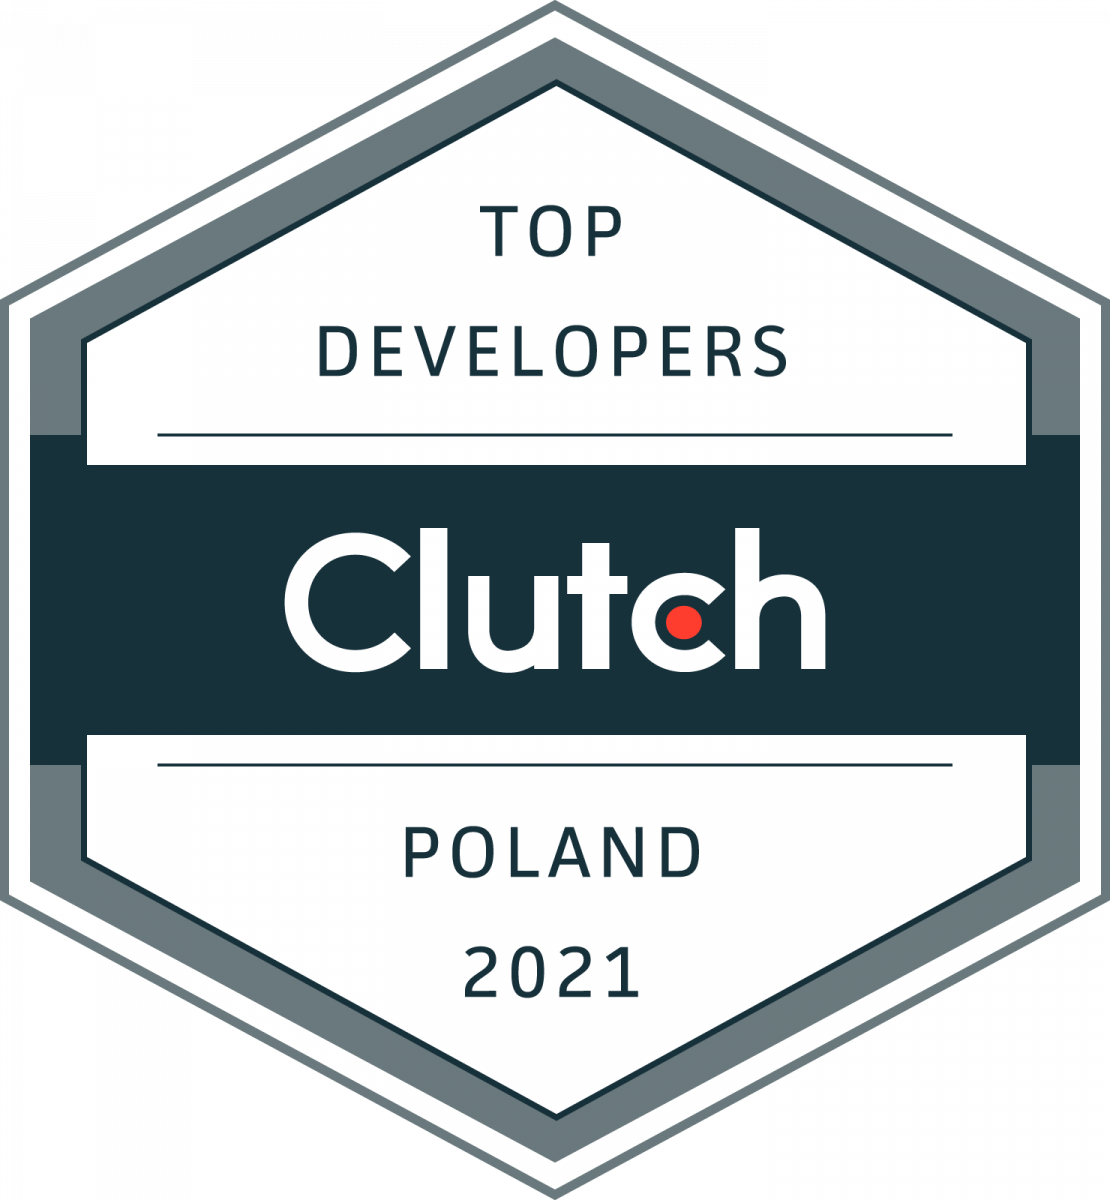 Top Developers Poland 2021